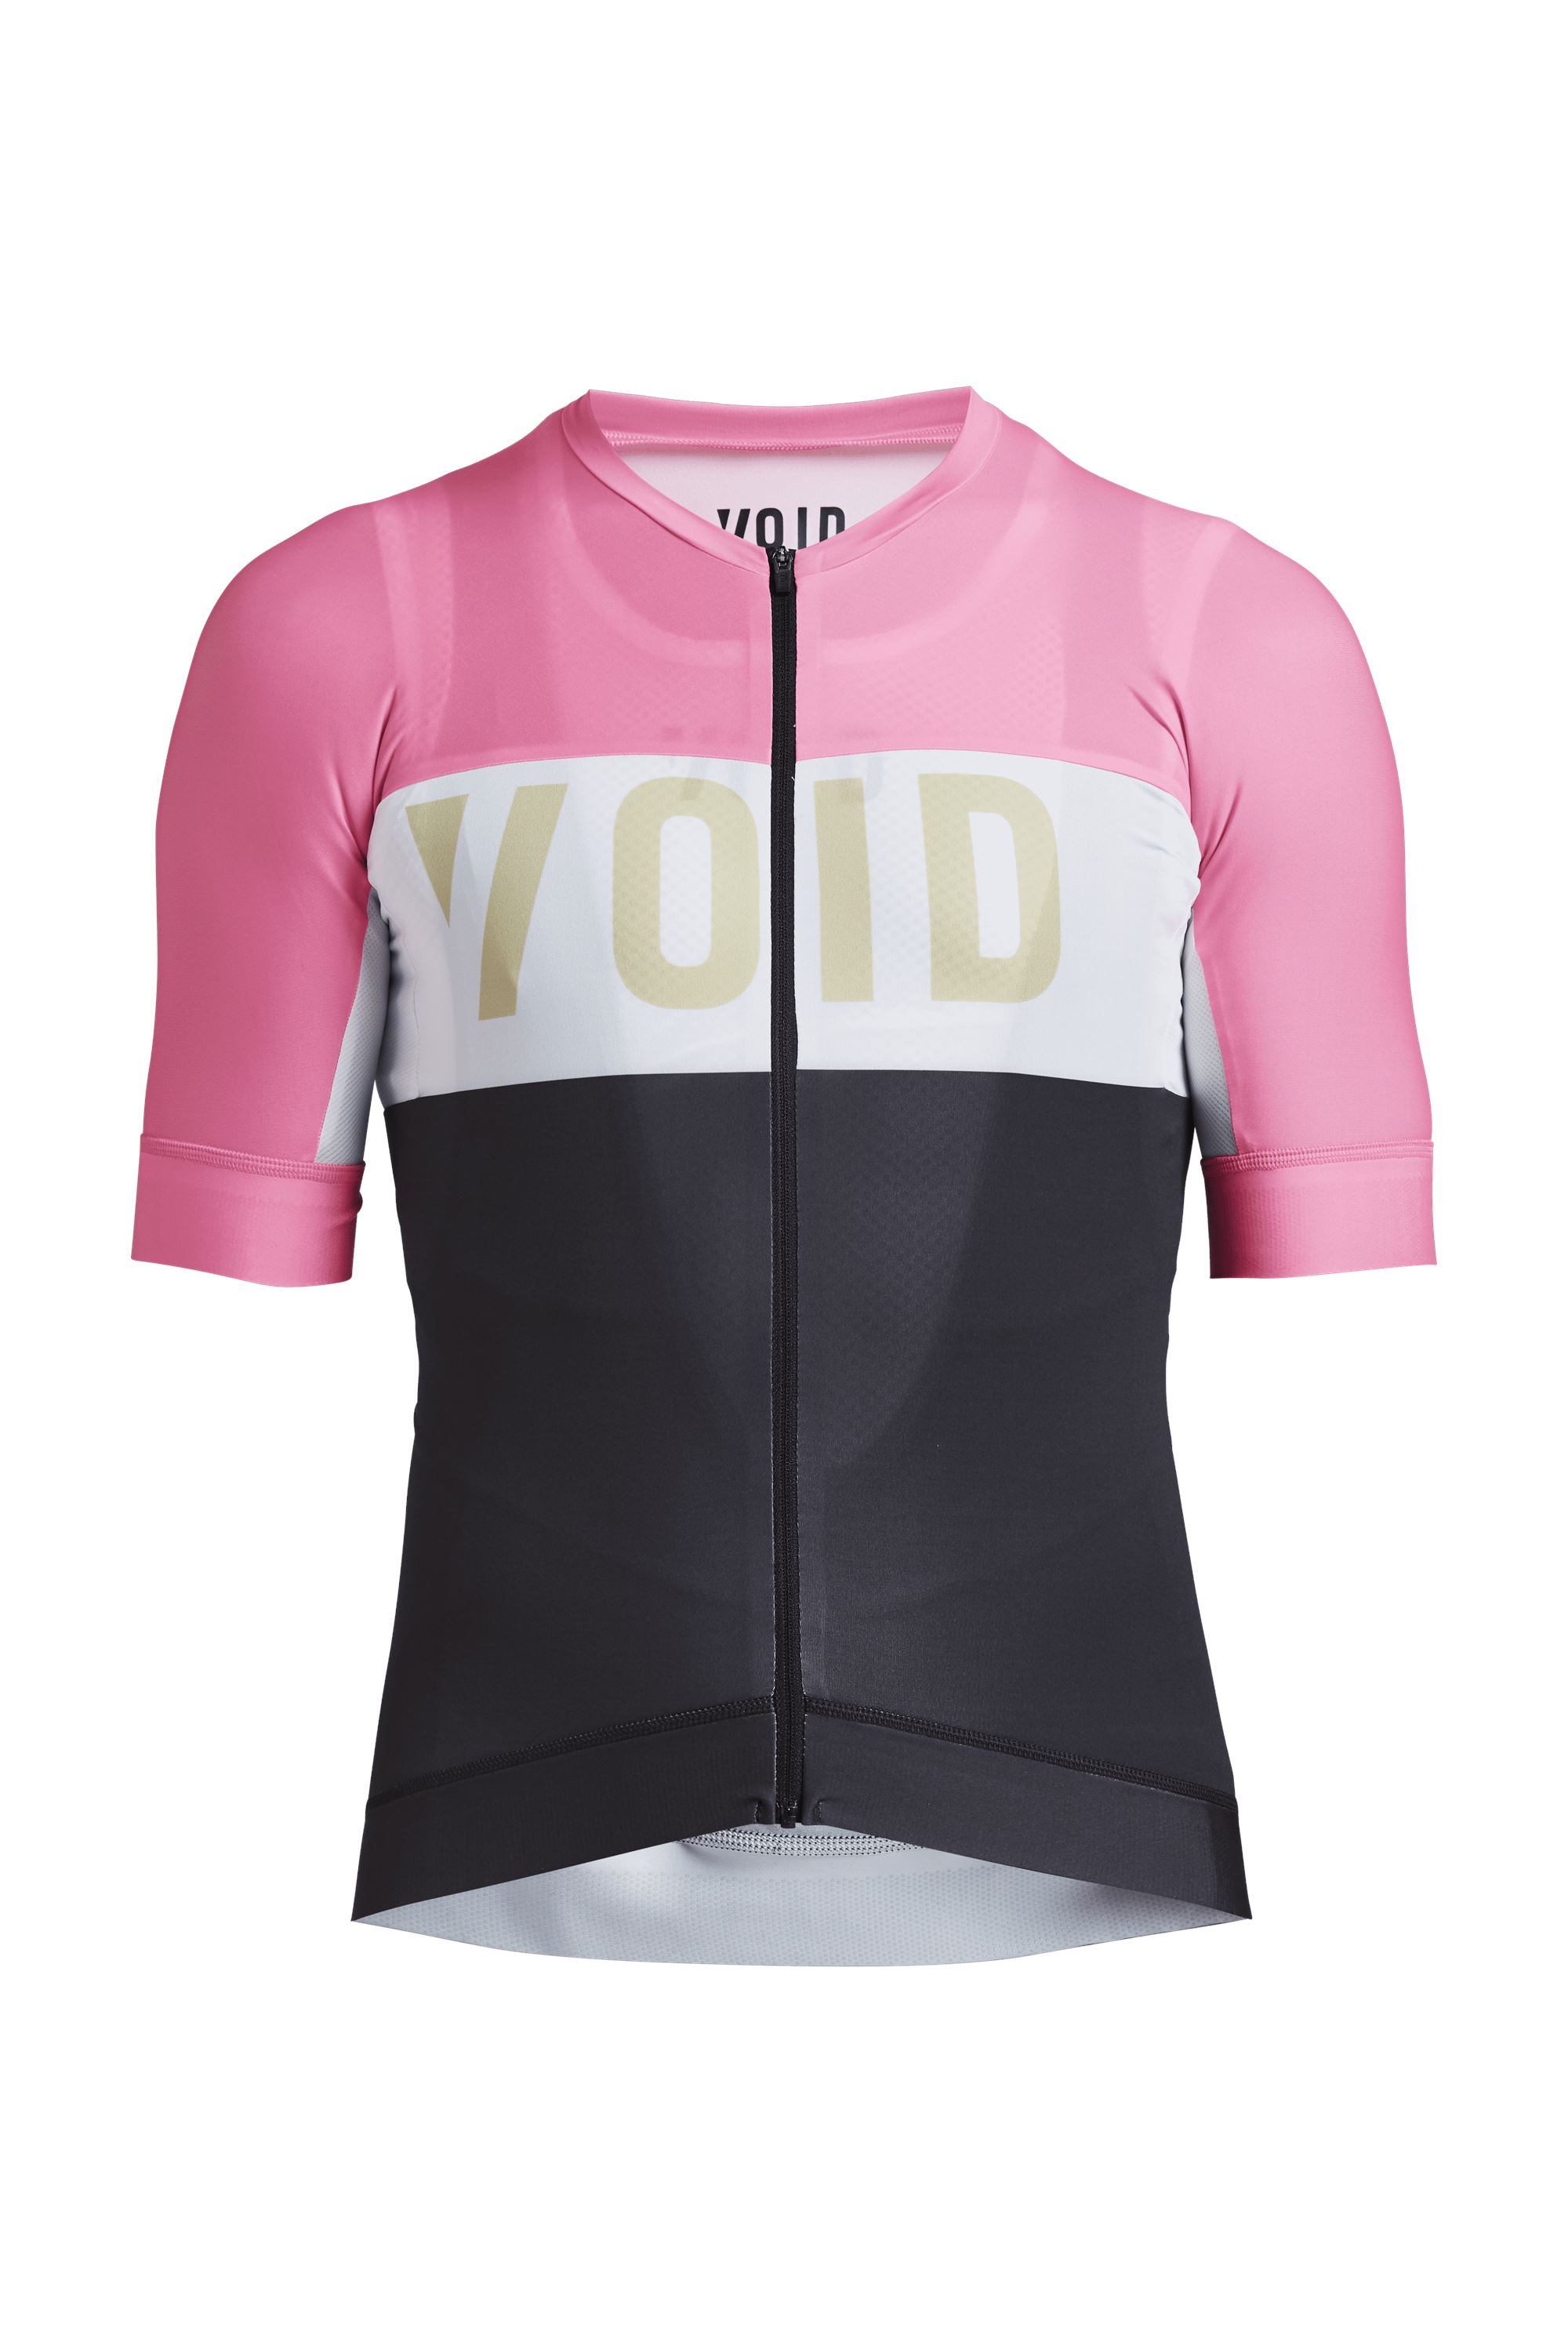 VOID FUSION JERSEY BLACK&PINK